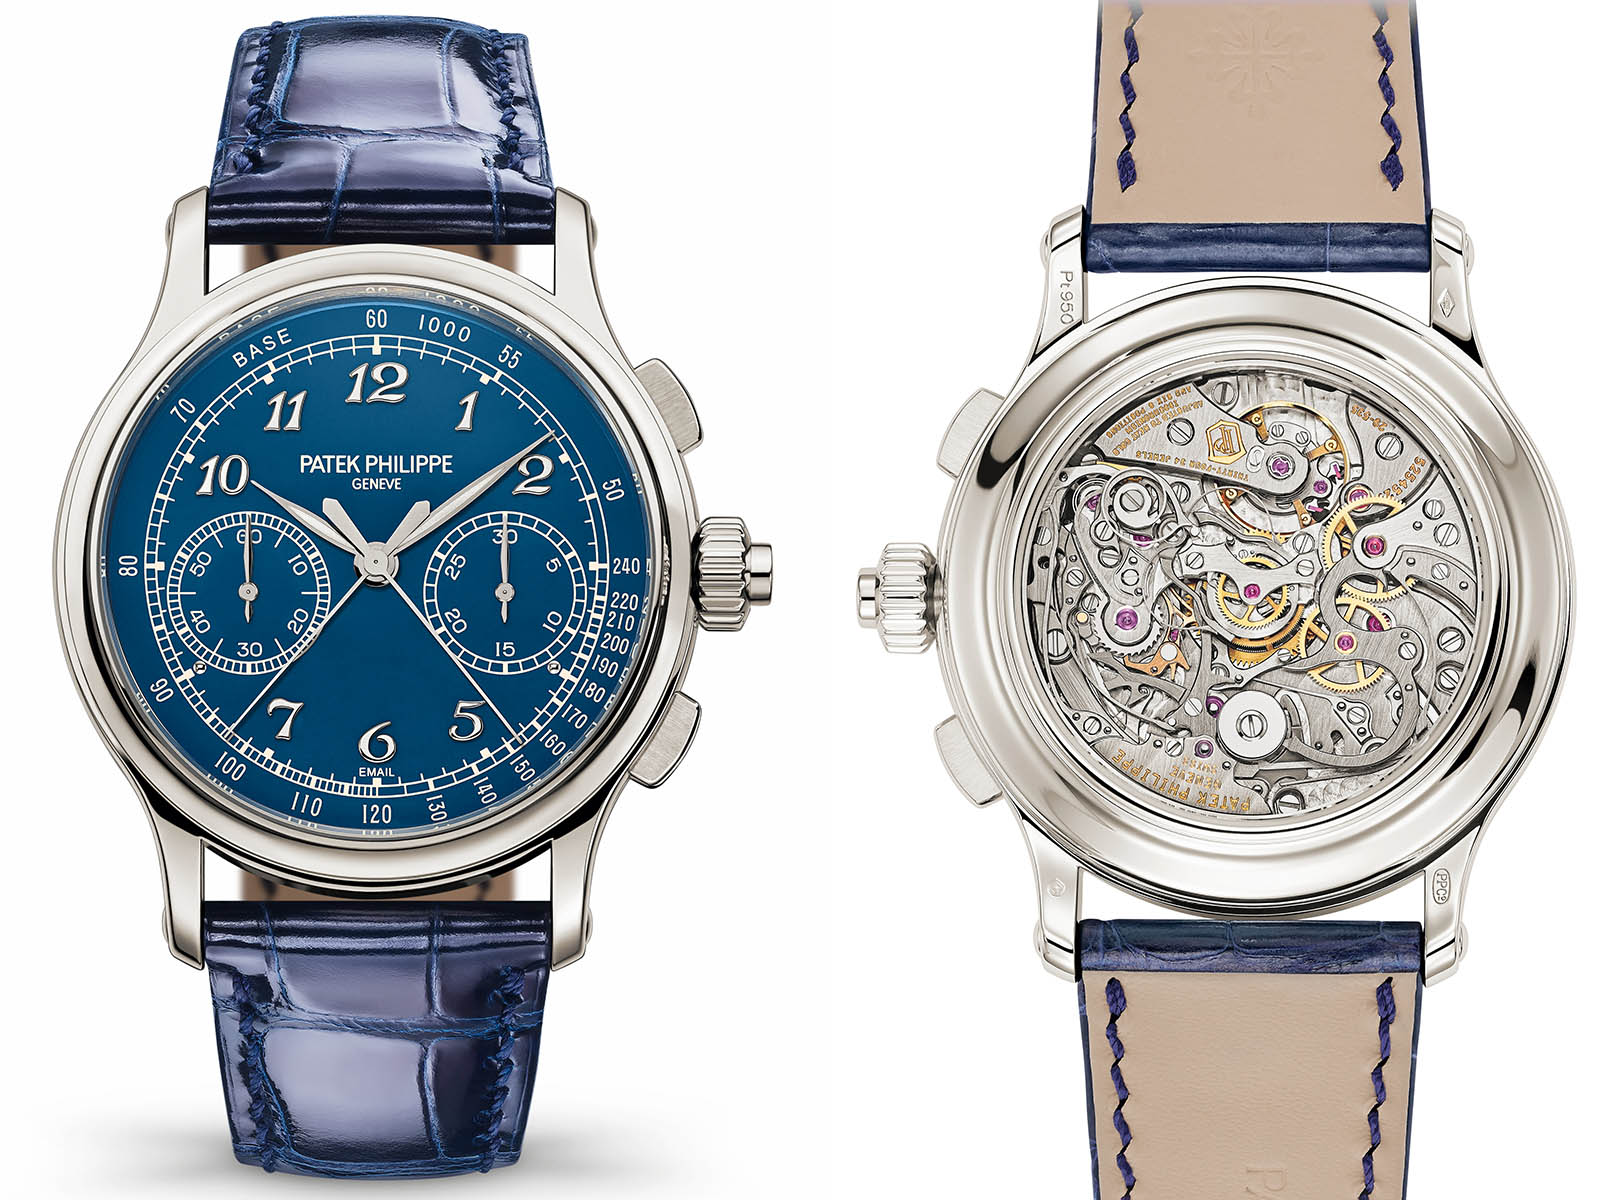 5370p-011-patek-philippe-5370p-split-second-chronograph-3.jpg